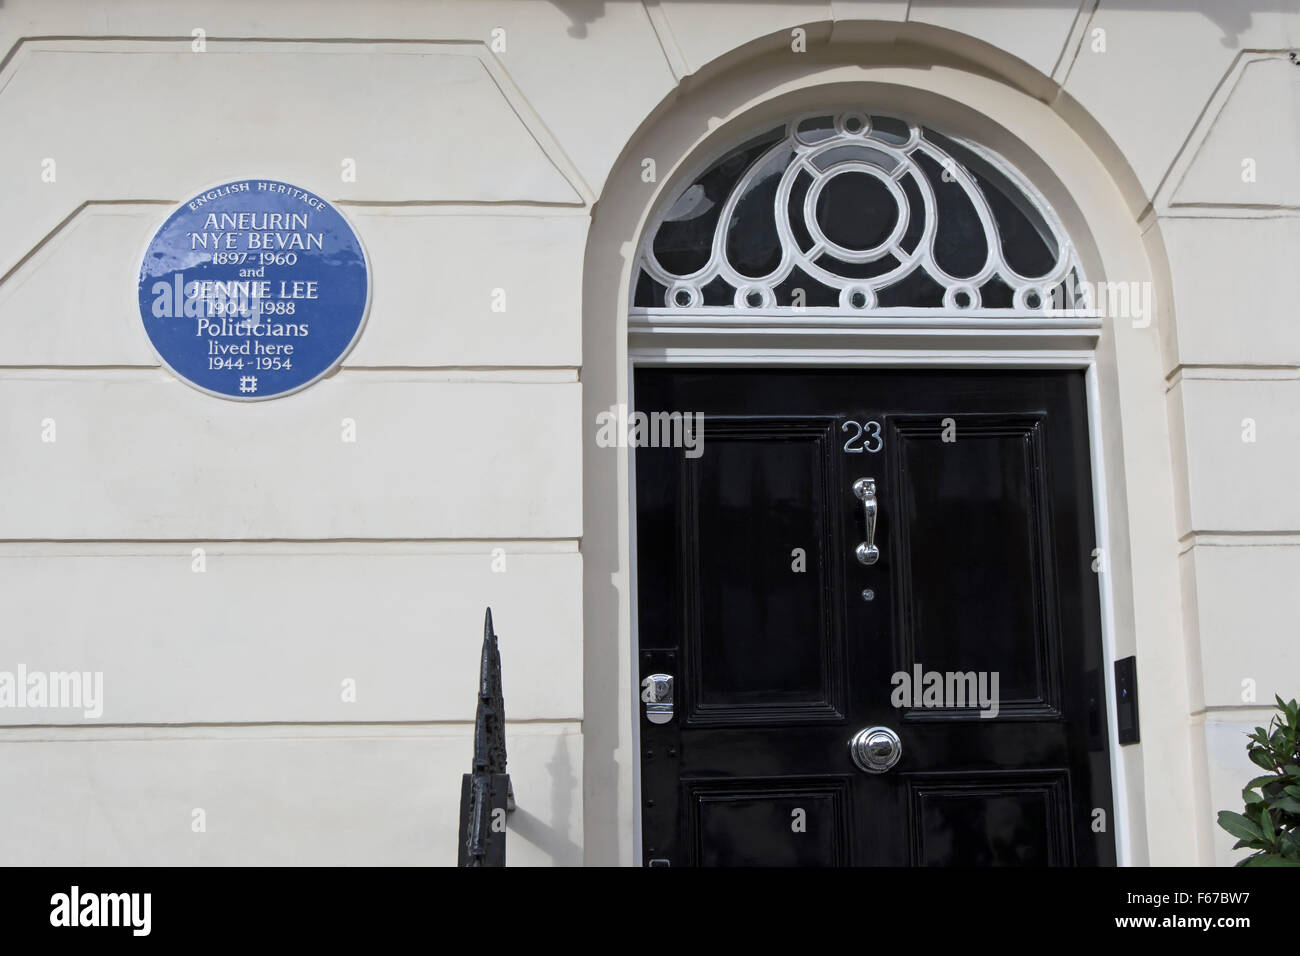 english heritage blue plaque marking a  home of politicians aneurin 'nye' bevan and jennie lee, in belgravia, - Stock Image